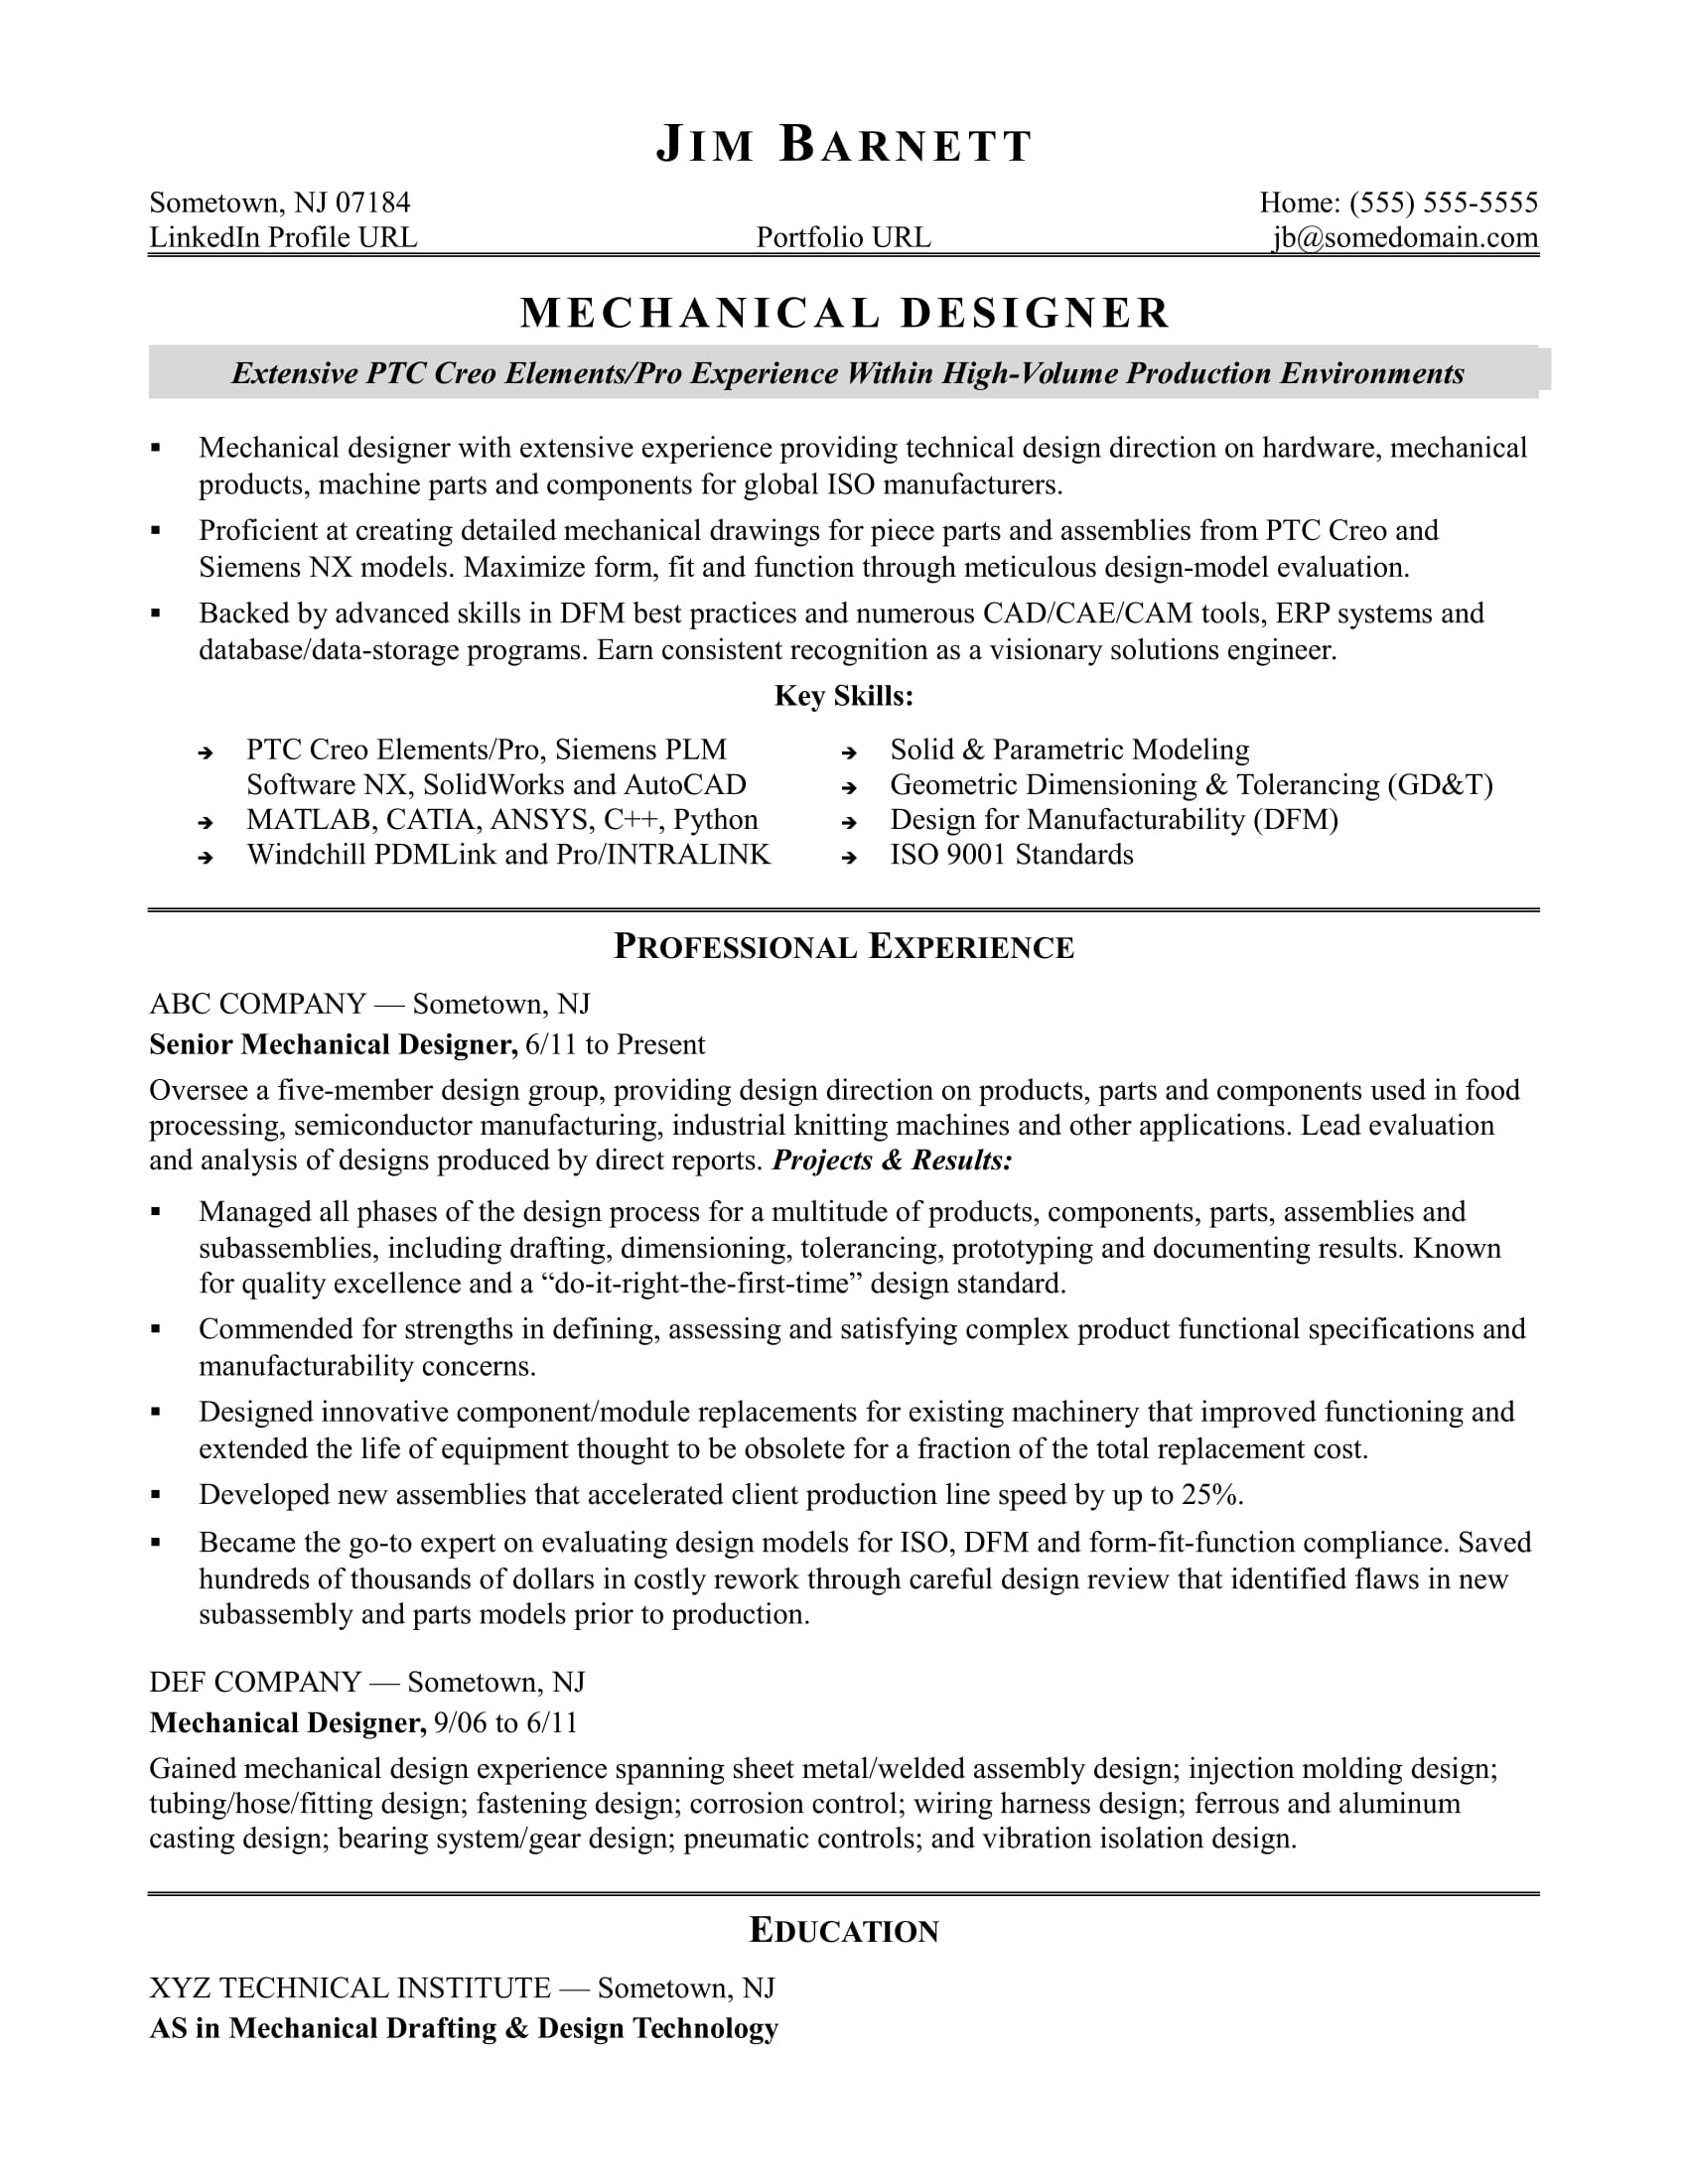 sample resume for an experienced mechanical designer monster com